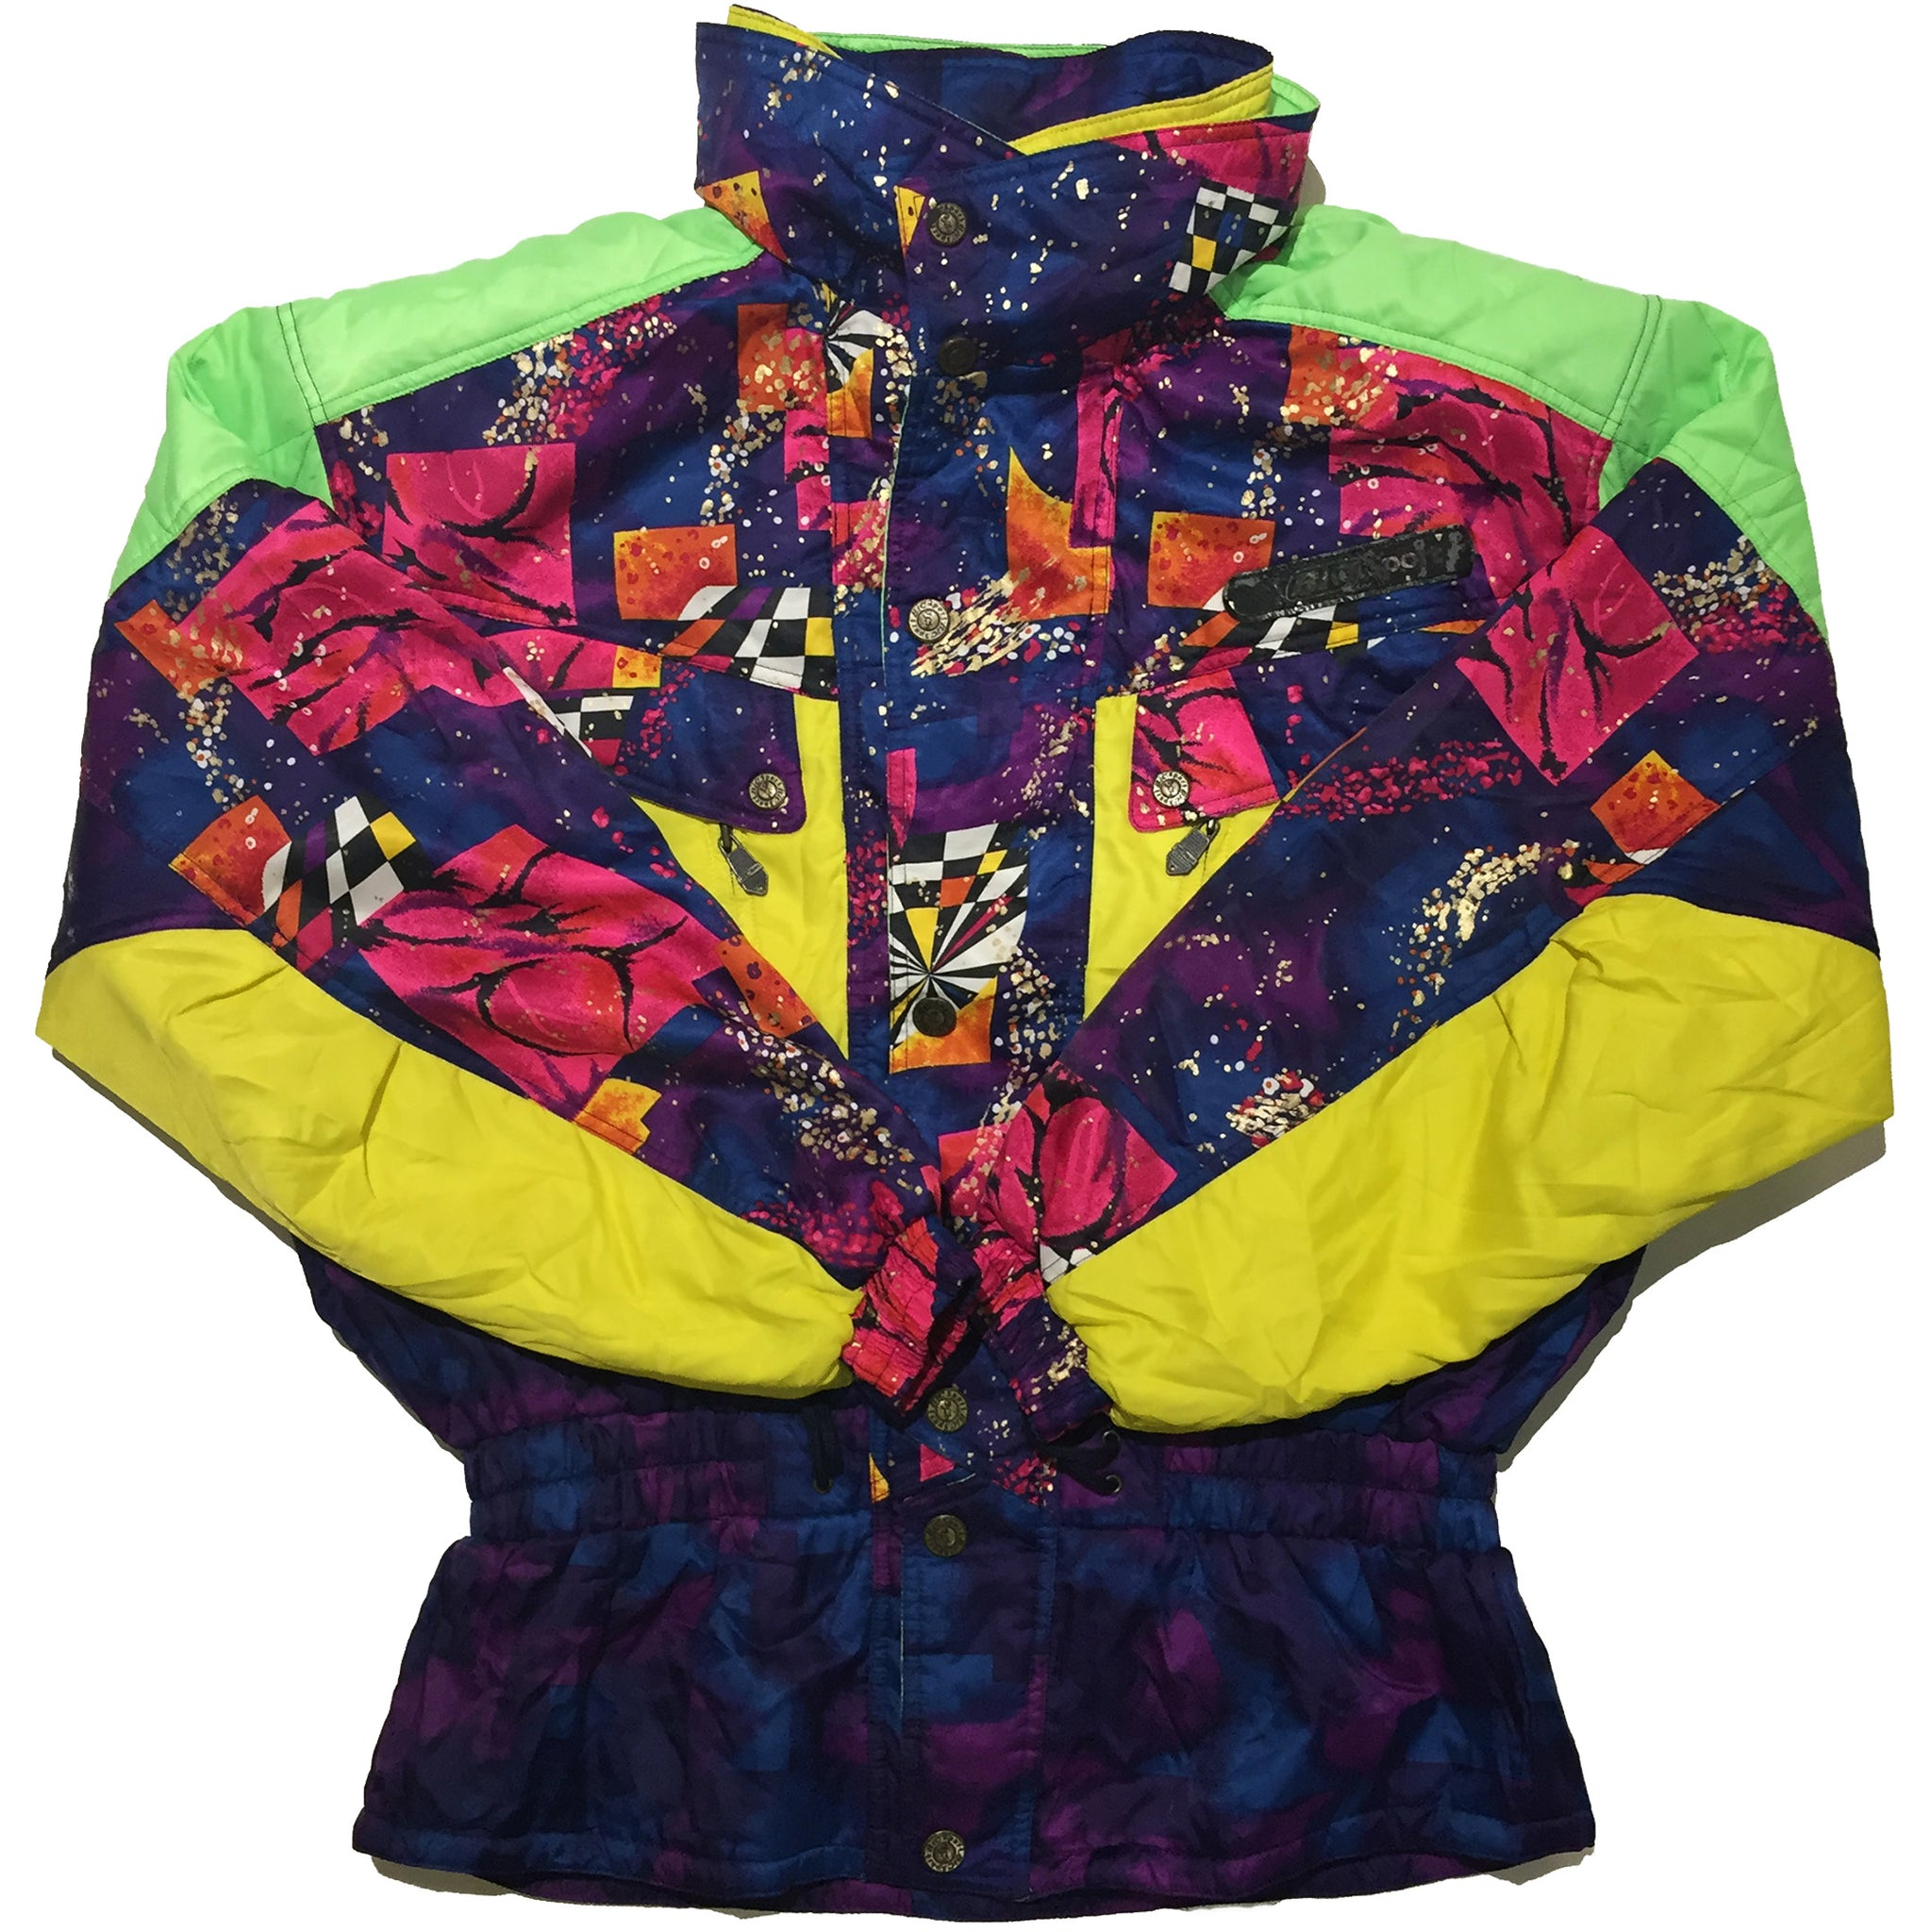 BIC Sport Green, Yellow, Purple, Blue Jacket